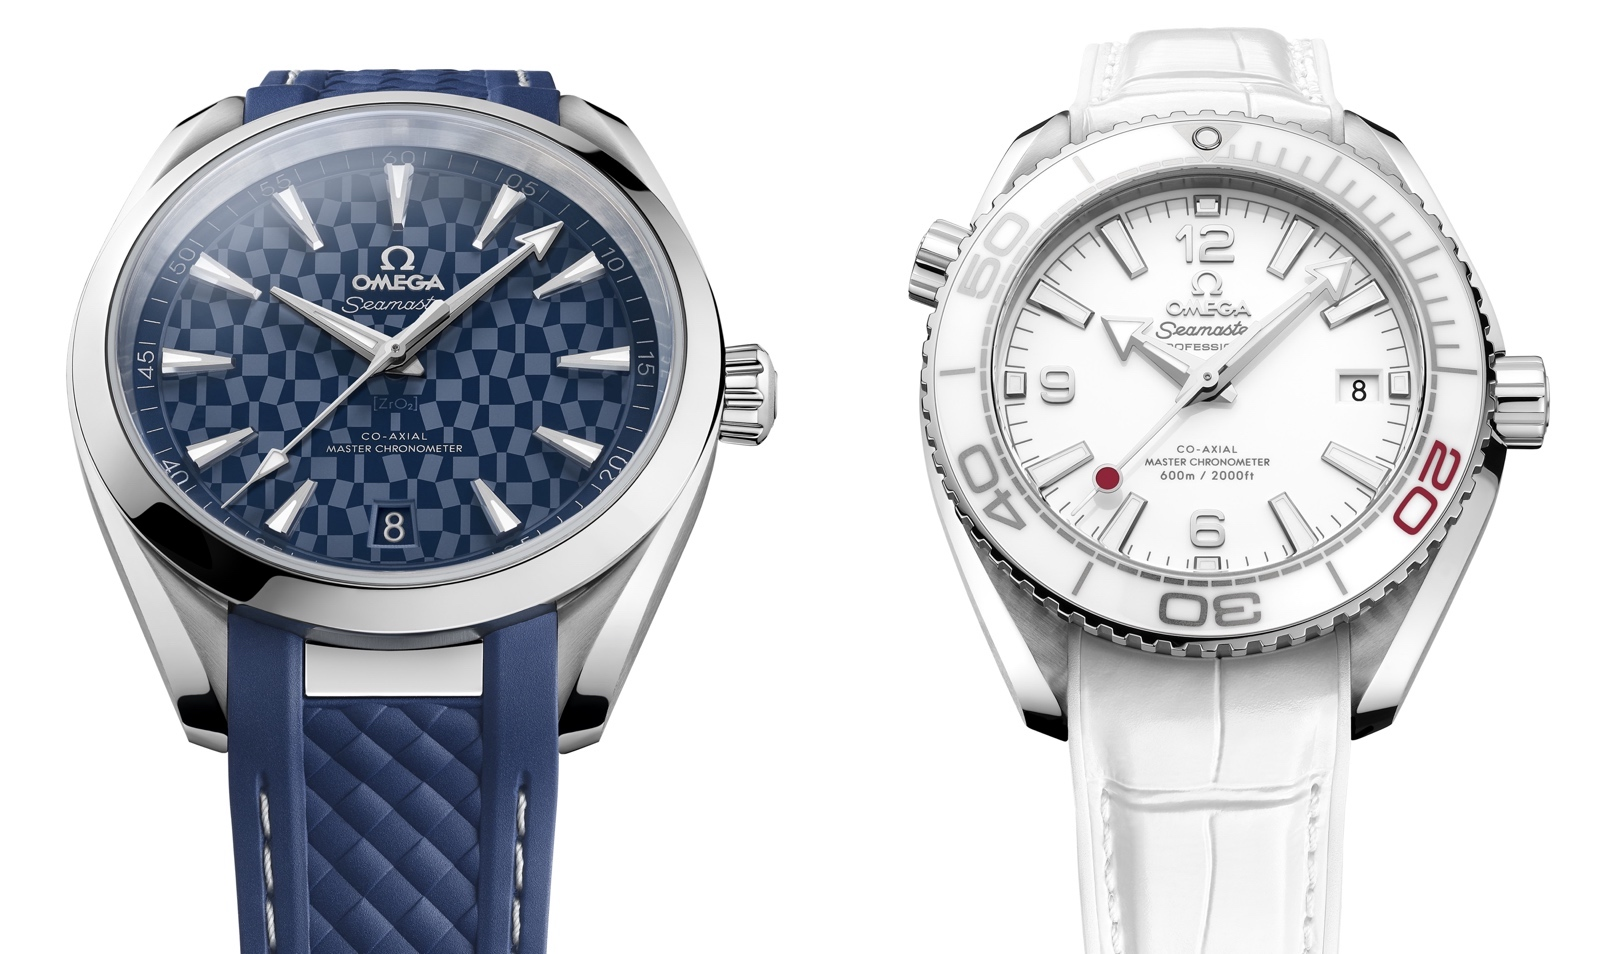 Omega Seamaster Tokyo 2020 Limited Editions